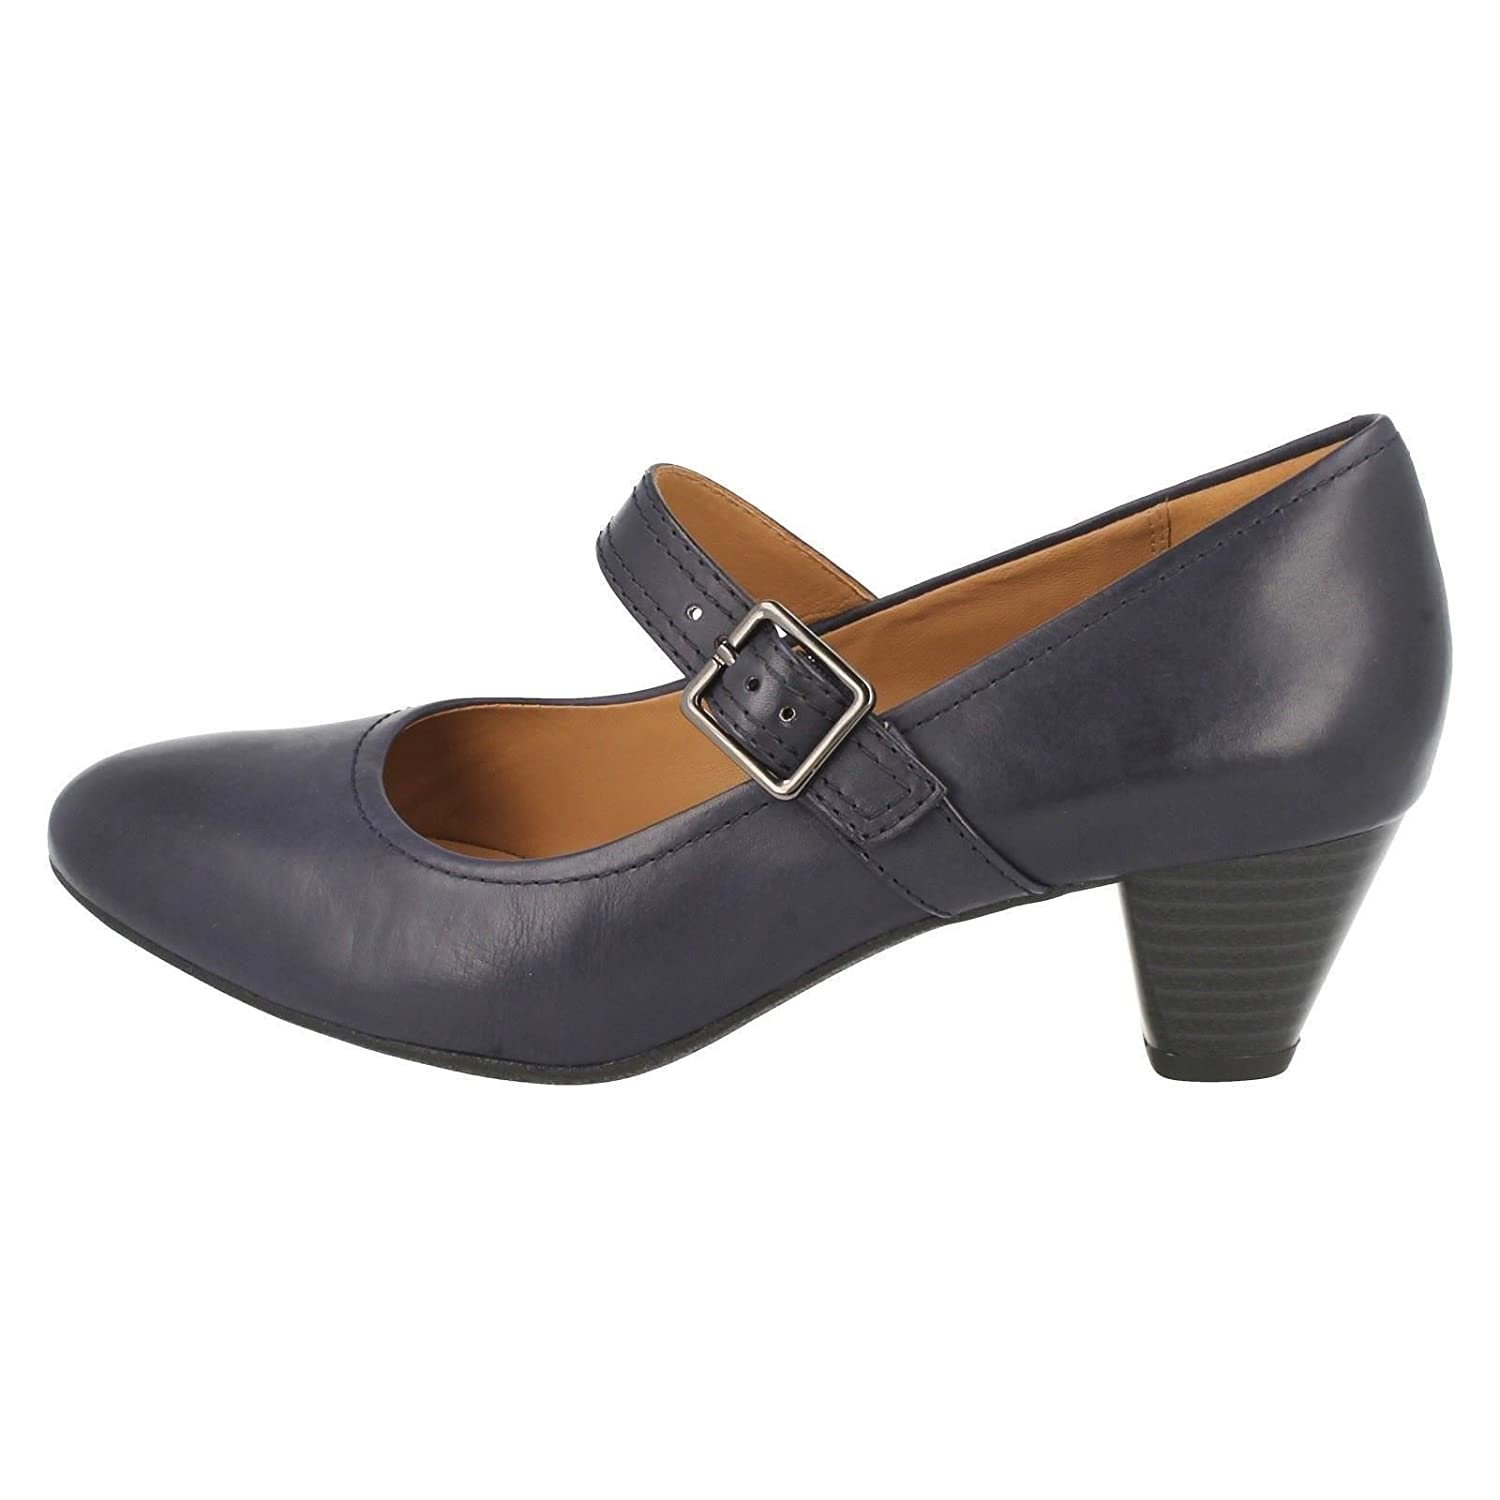 cb900ee260fb Clarks Womens Smart Clarks Denny Date Leather Shoes In Navy Wide Fit Size  5  Amazon.co.uk  Shoes   Bags